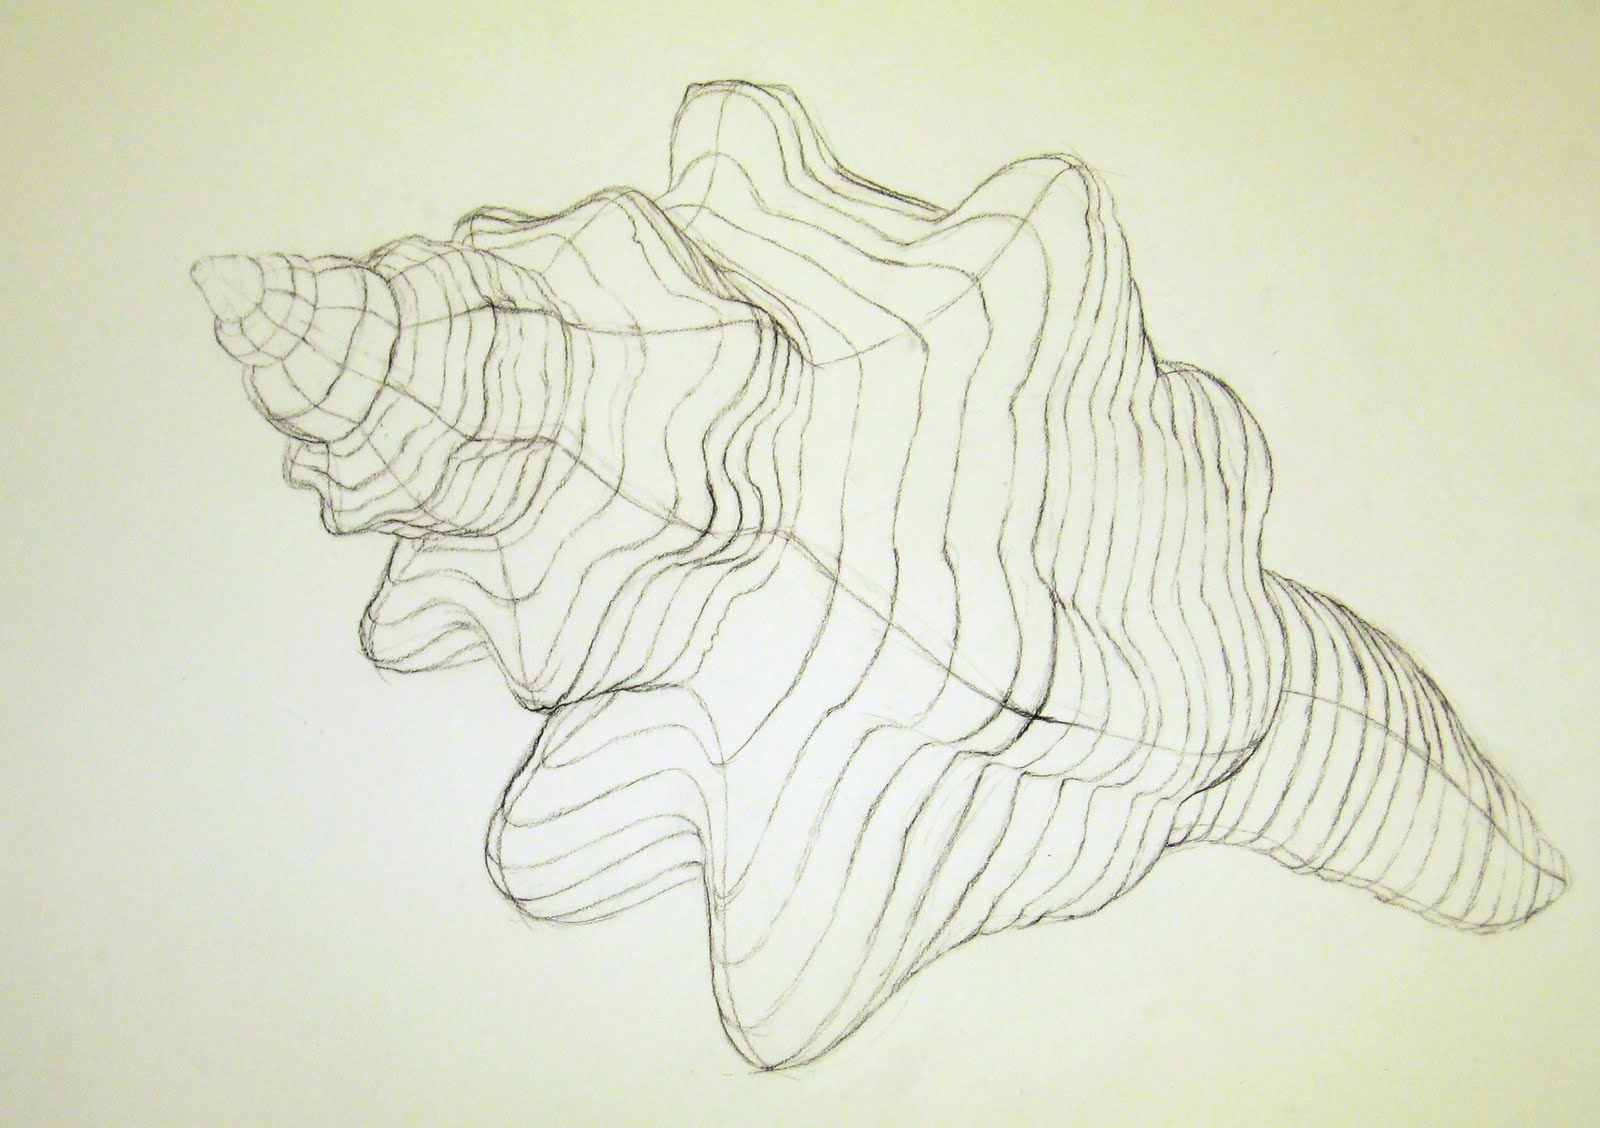 Contour Line Drawing In Art : Cross contour drawing apple at getdrawings free for personal